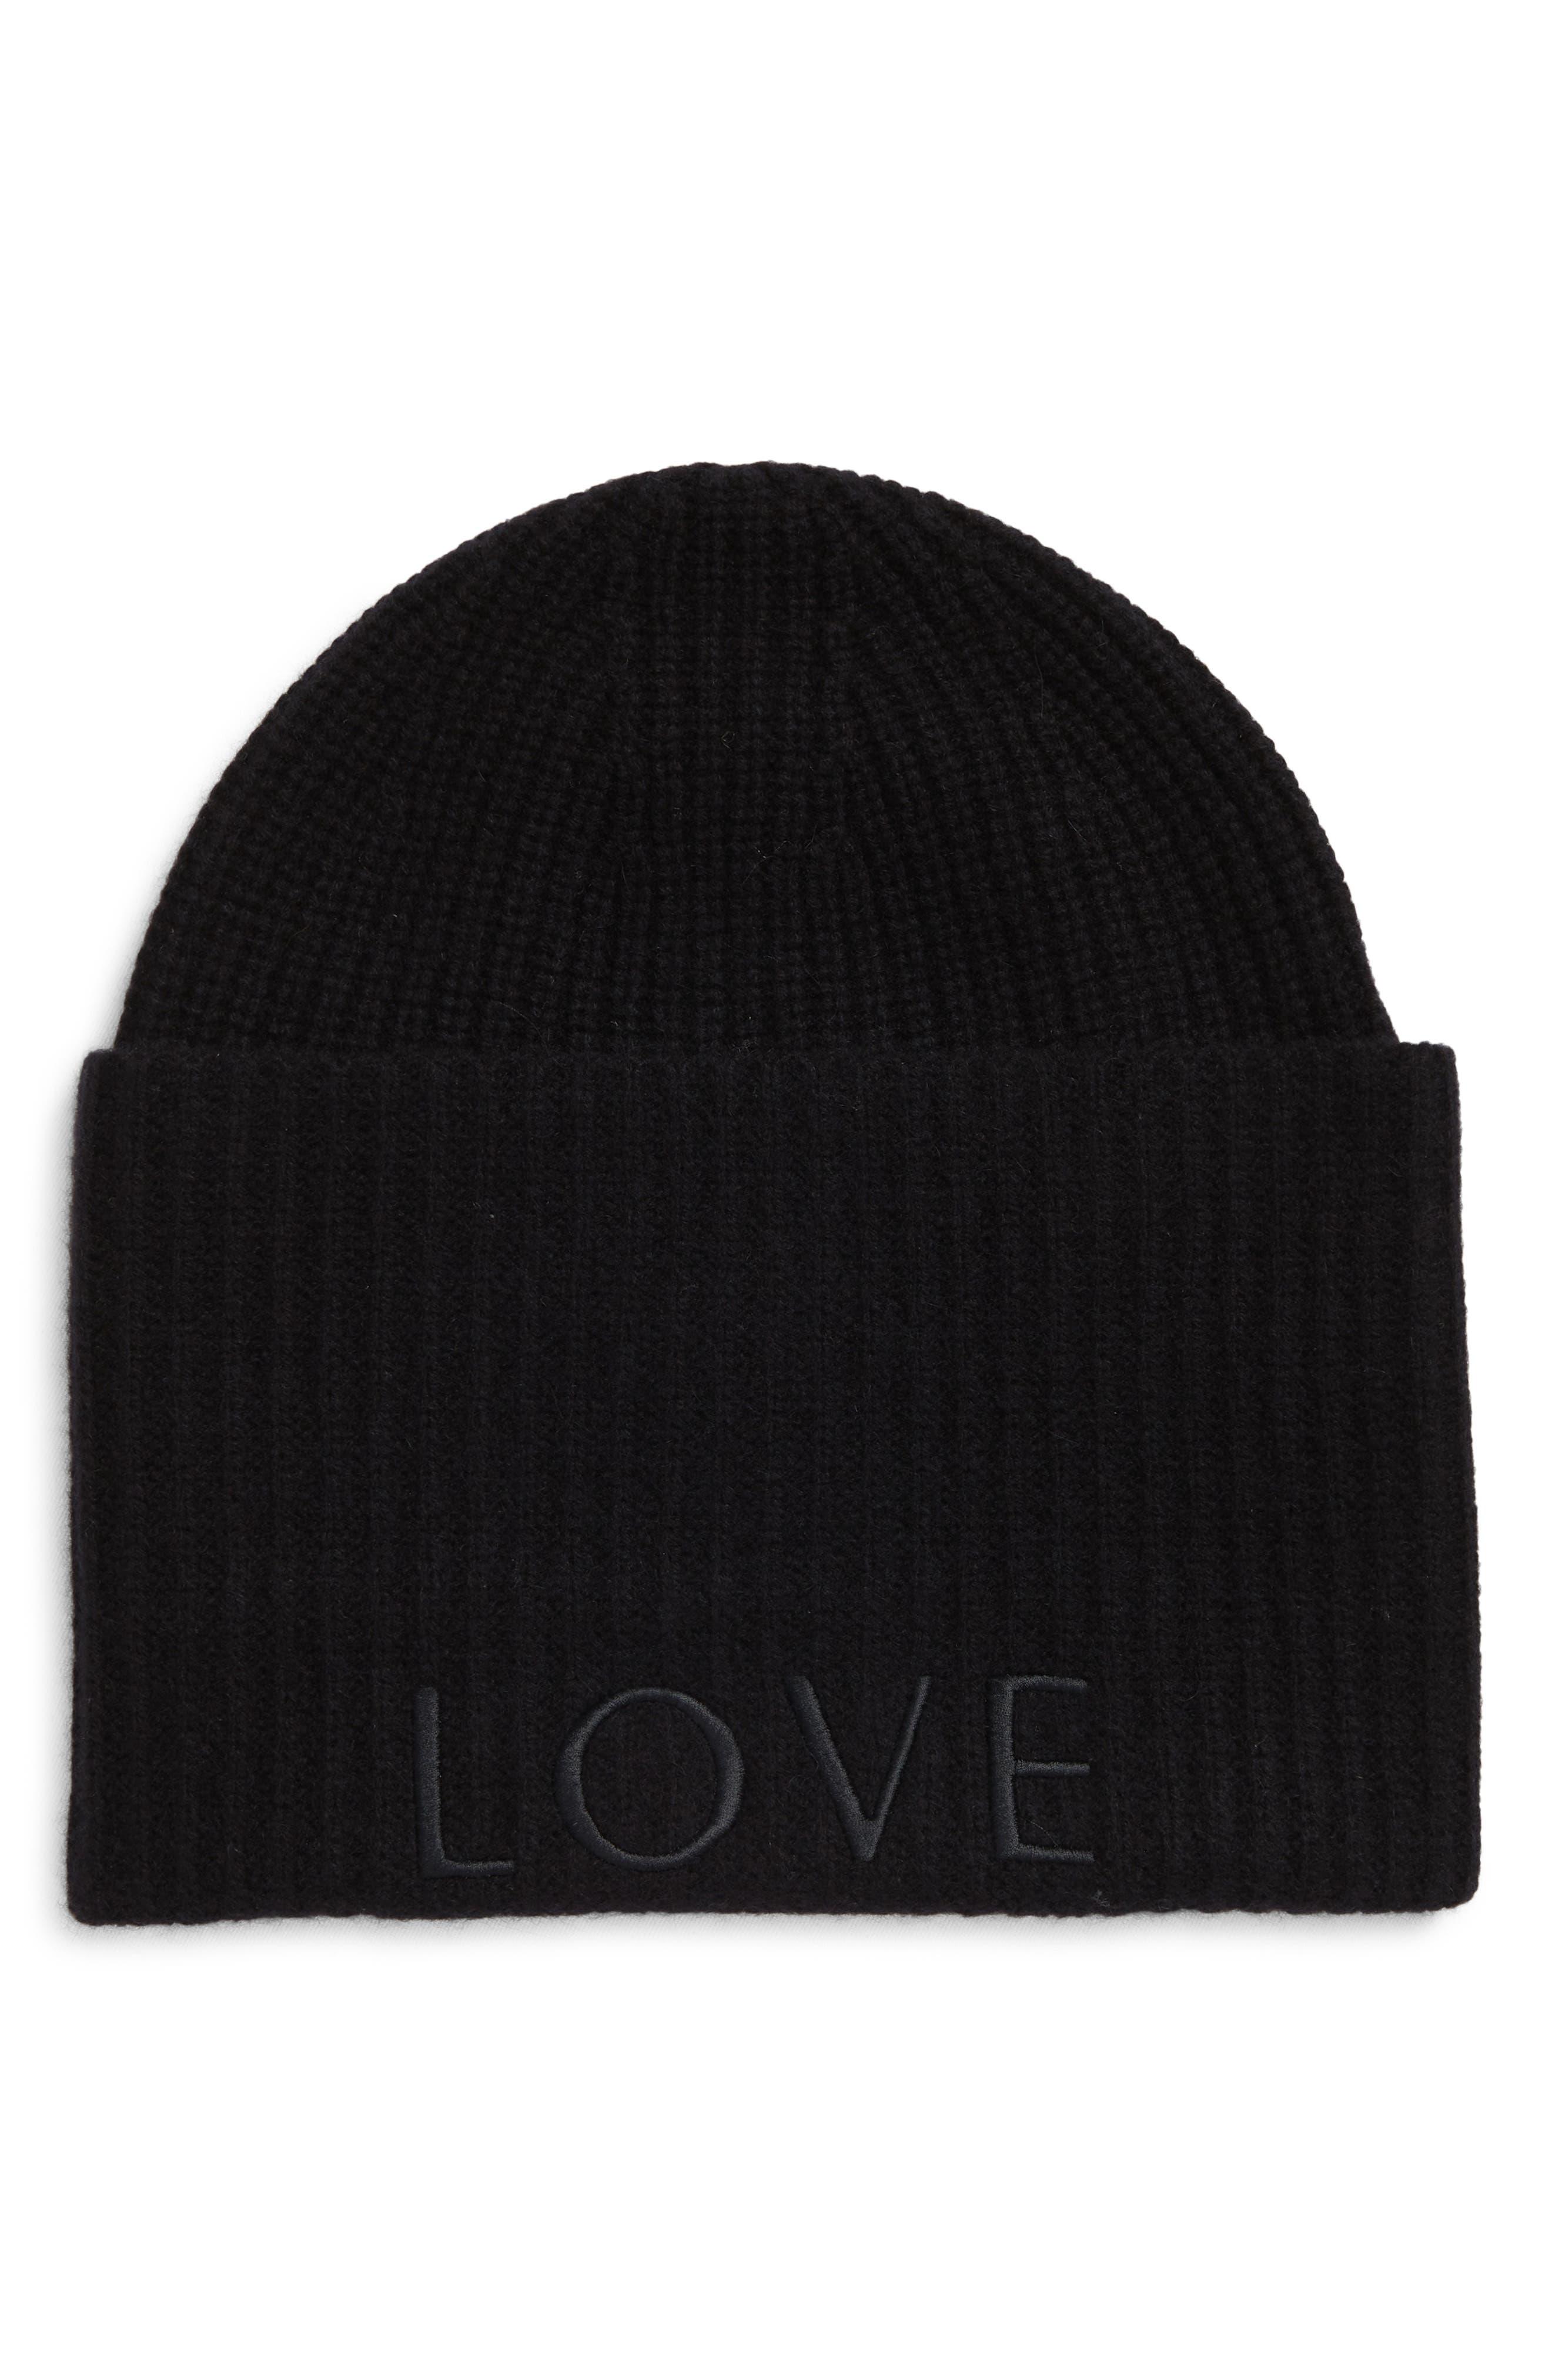 Love Recycled Cashmere Beanie